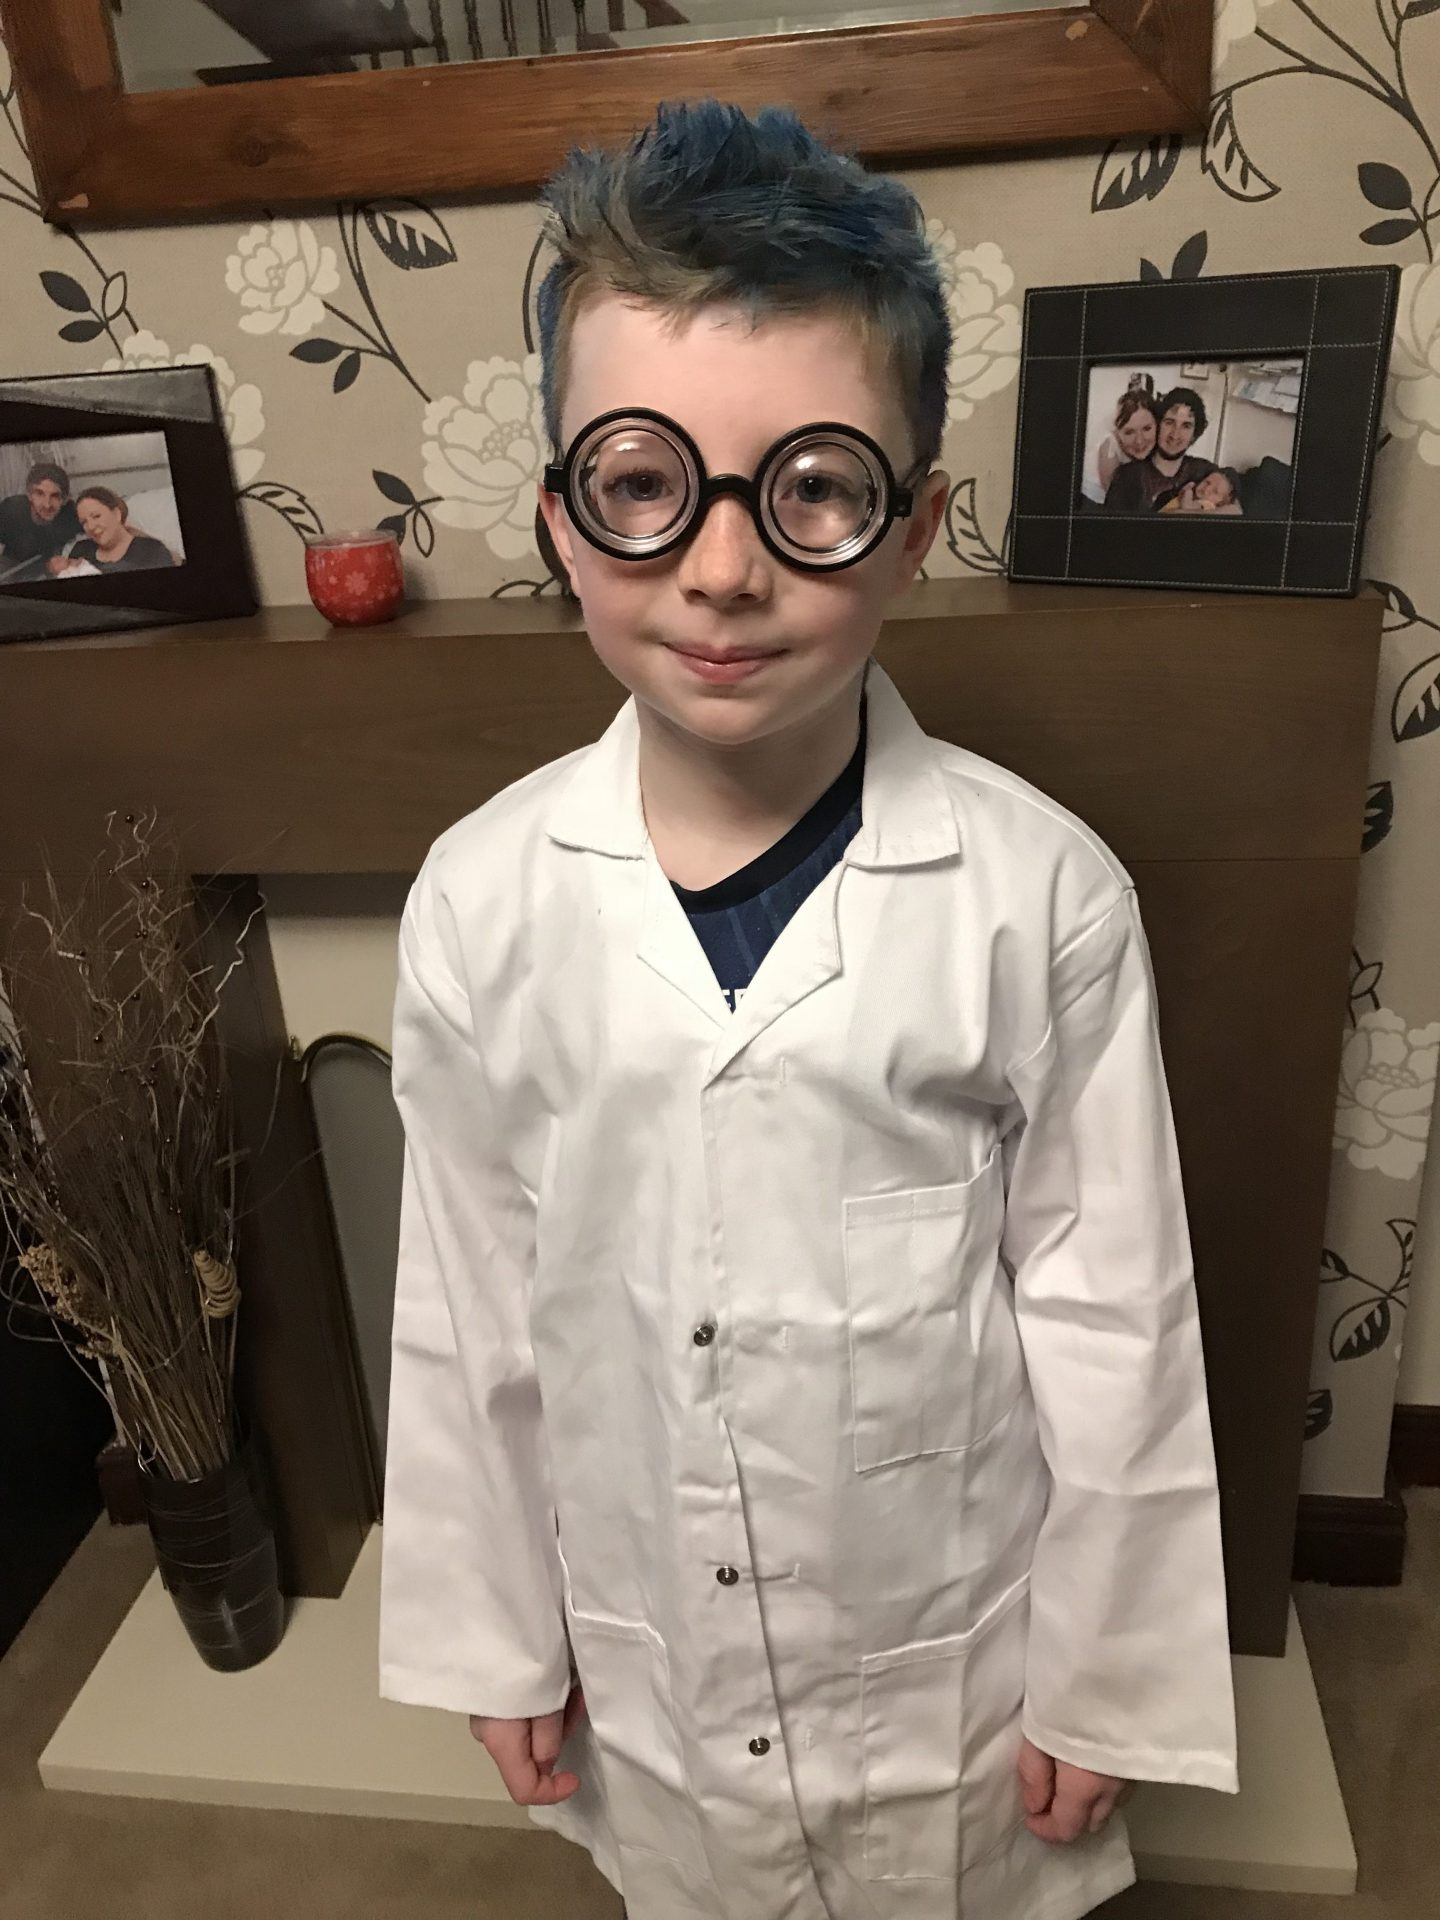 #LittleLoves – Mad Scientists, Super Heroes & Pantomime